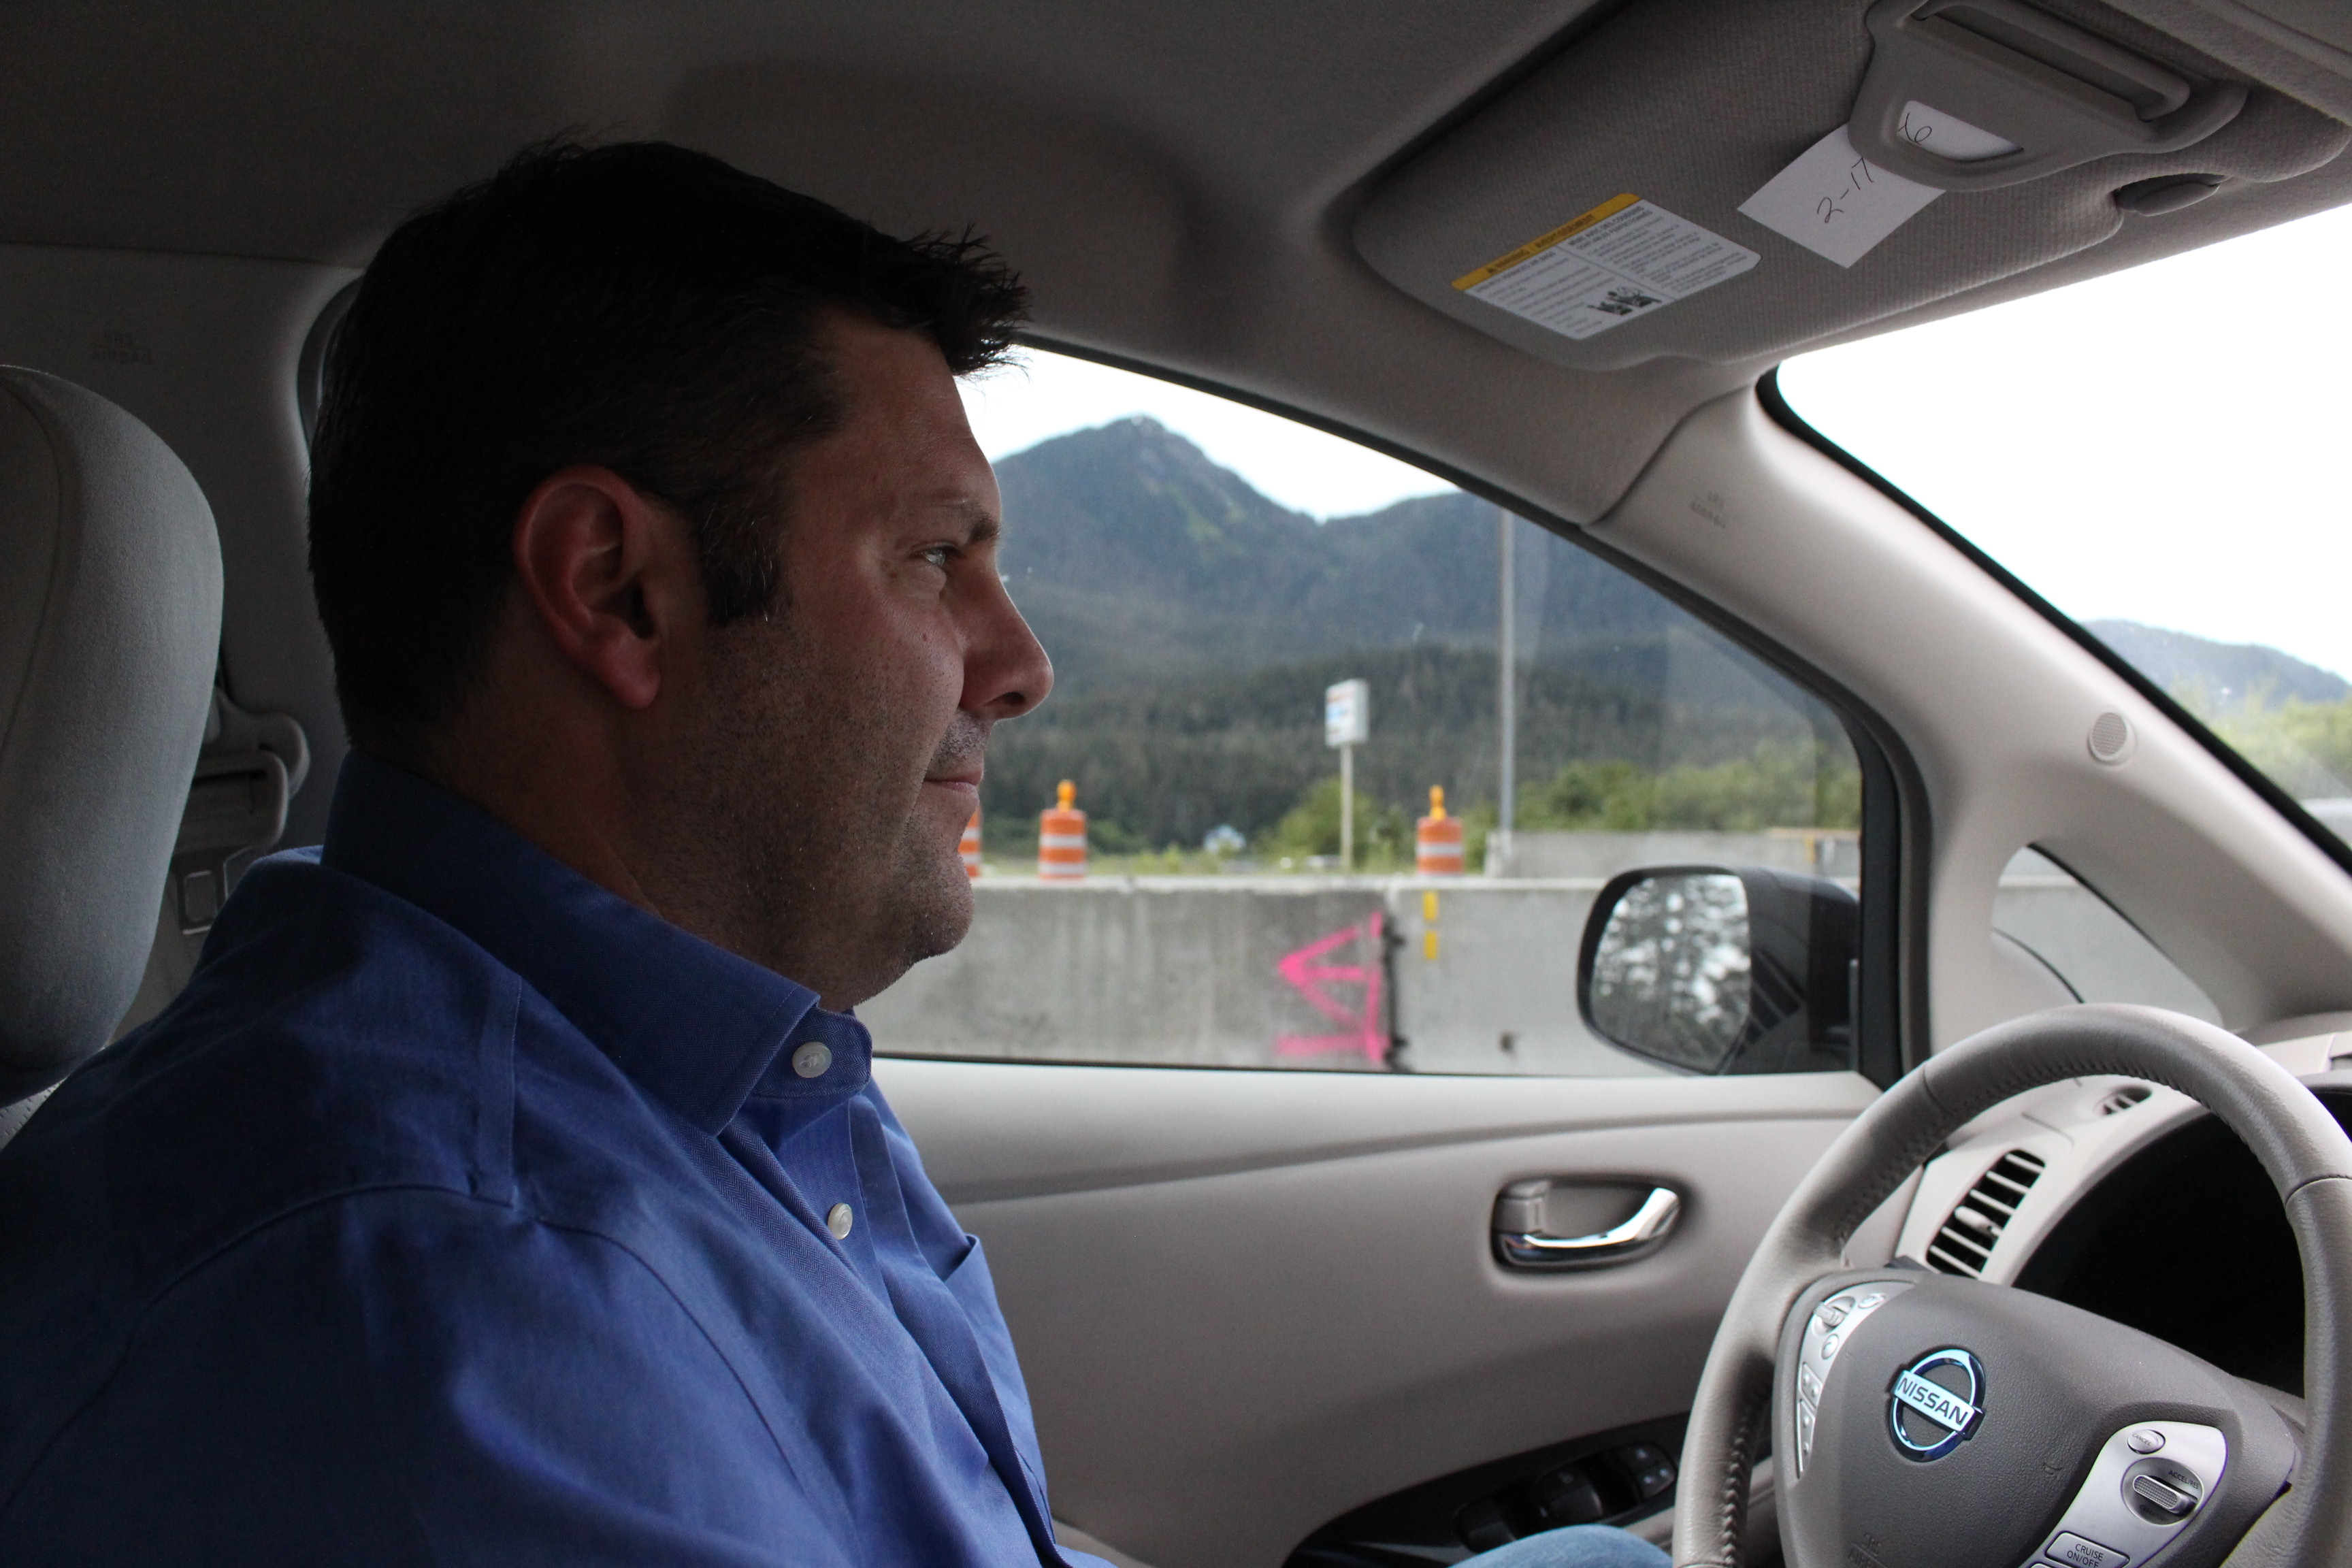 Travis McCain says he doesn't feel like he's given anything up driving a fully electric car. (Photo by Elizabeth Jenkins, KTOO - Juneau)